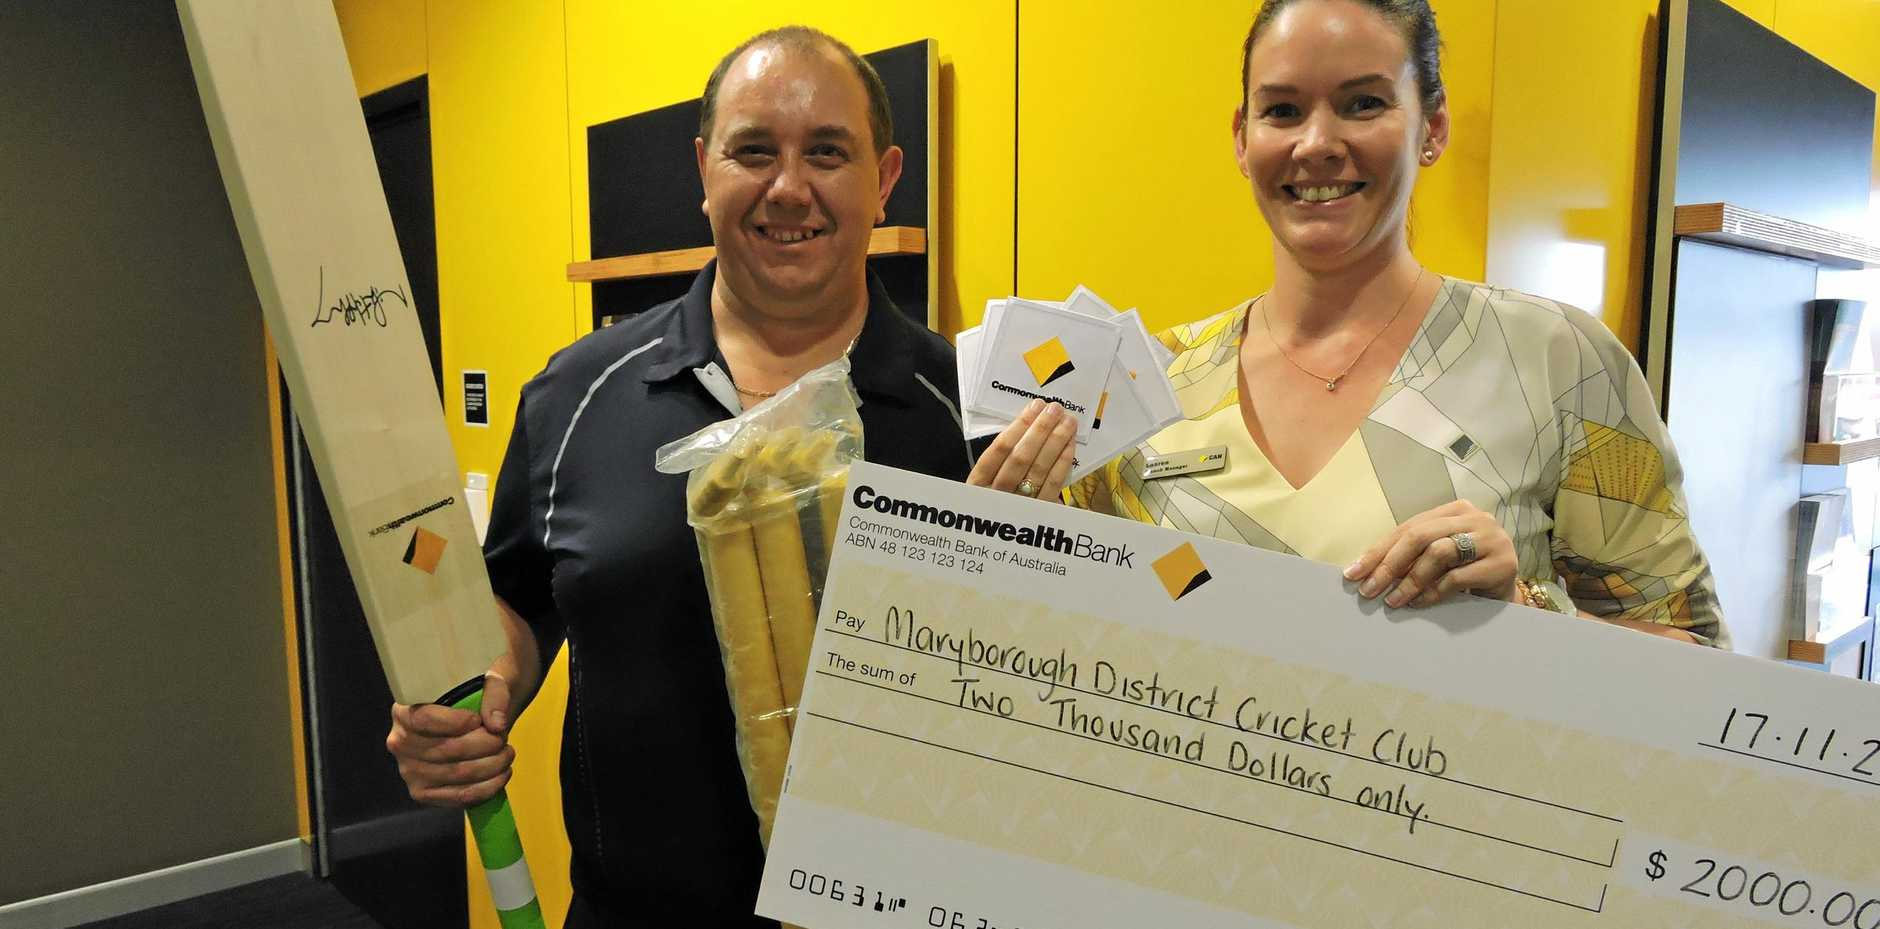 Maryborough District Cricket Association general manager Chris Strochnetter received sponsorship in the way of cash and equipment by CommBank's branch manager Lauren Bateup.